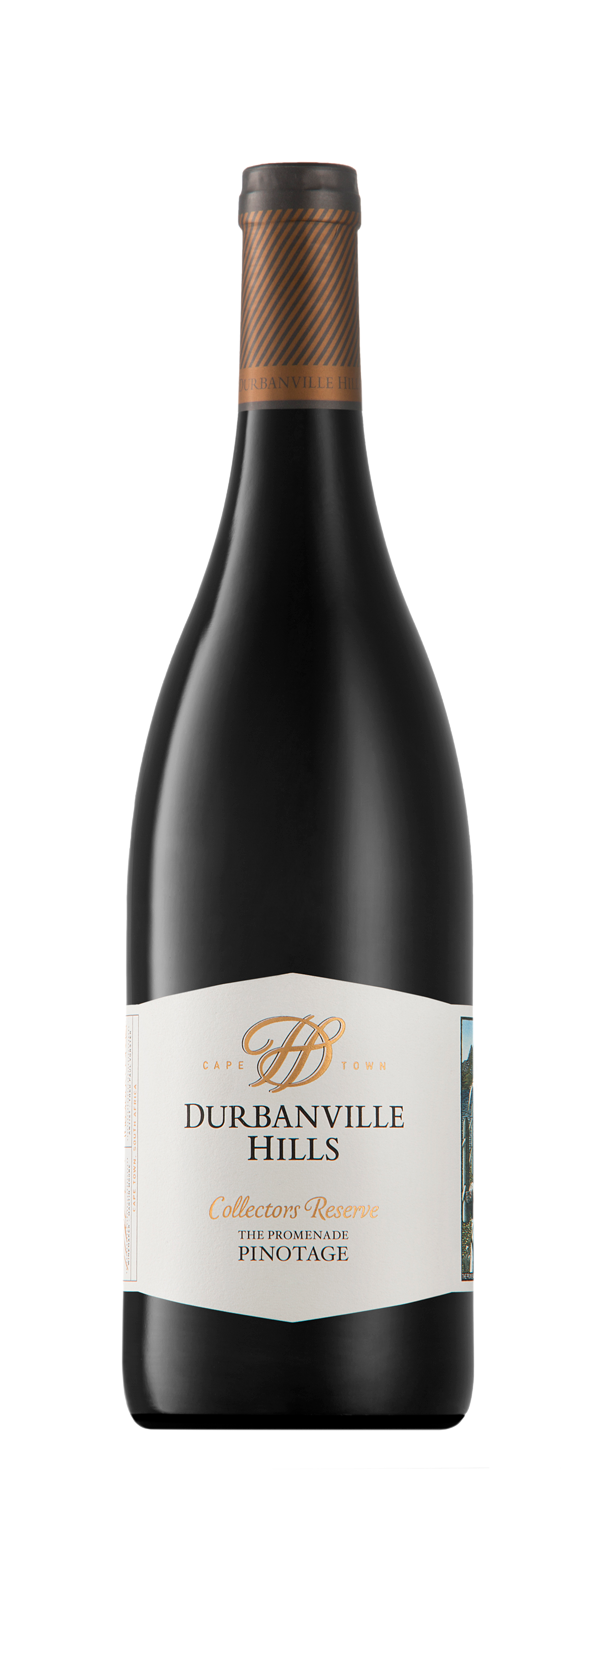 collectors-reserve - The Promenade Pinotage